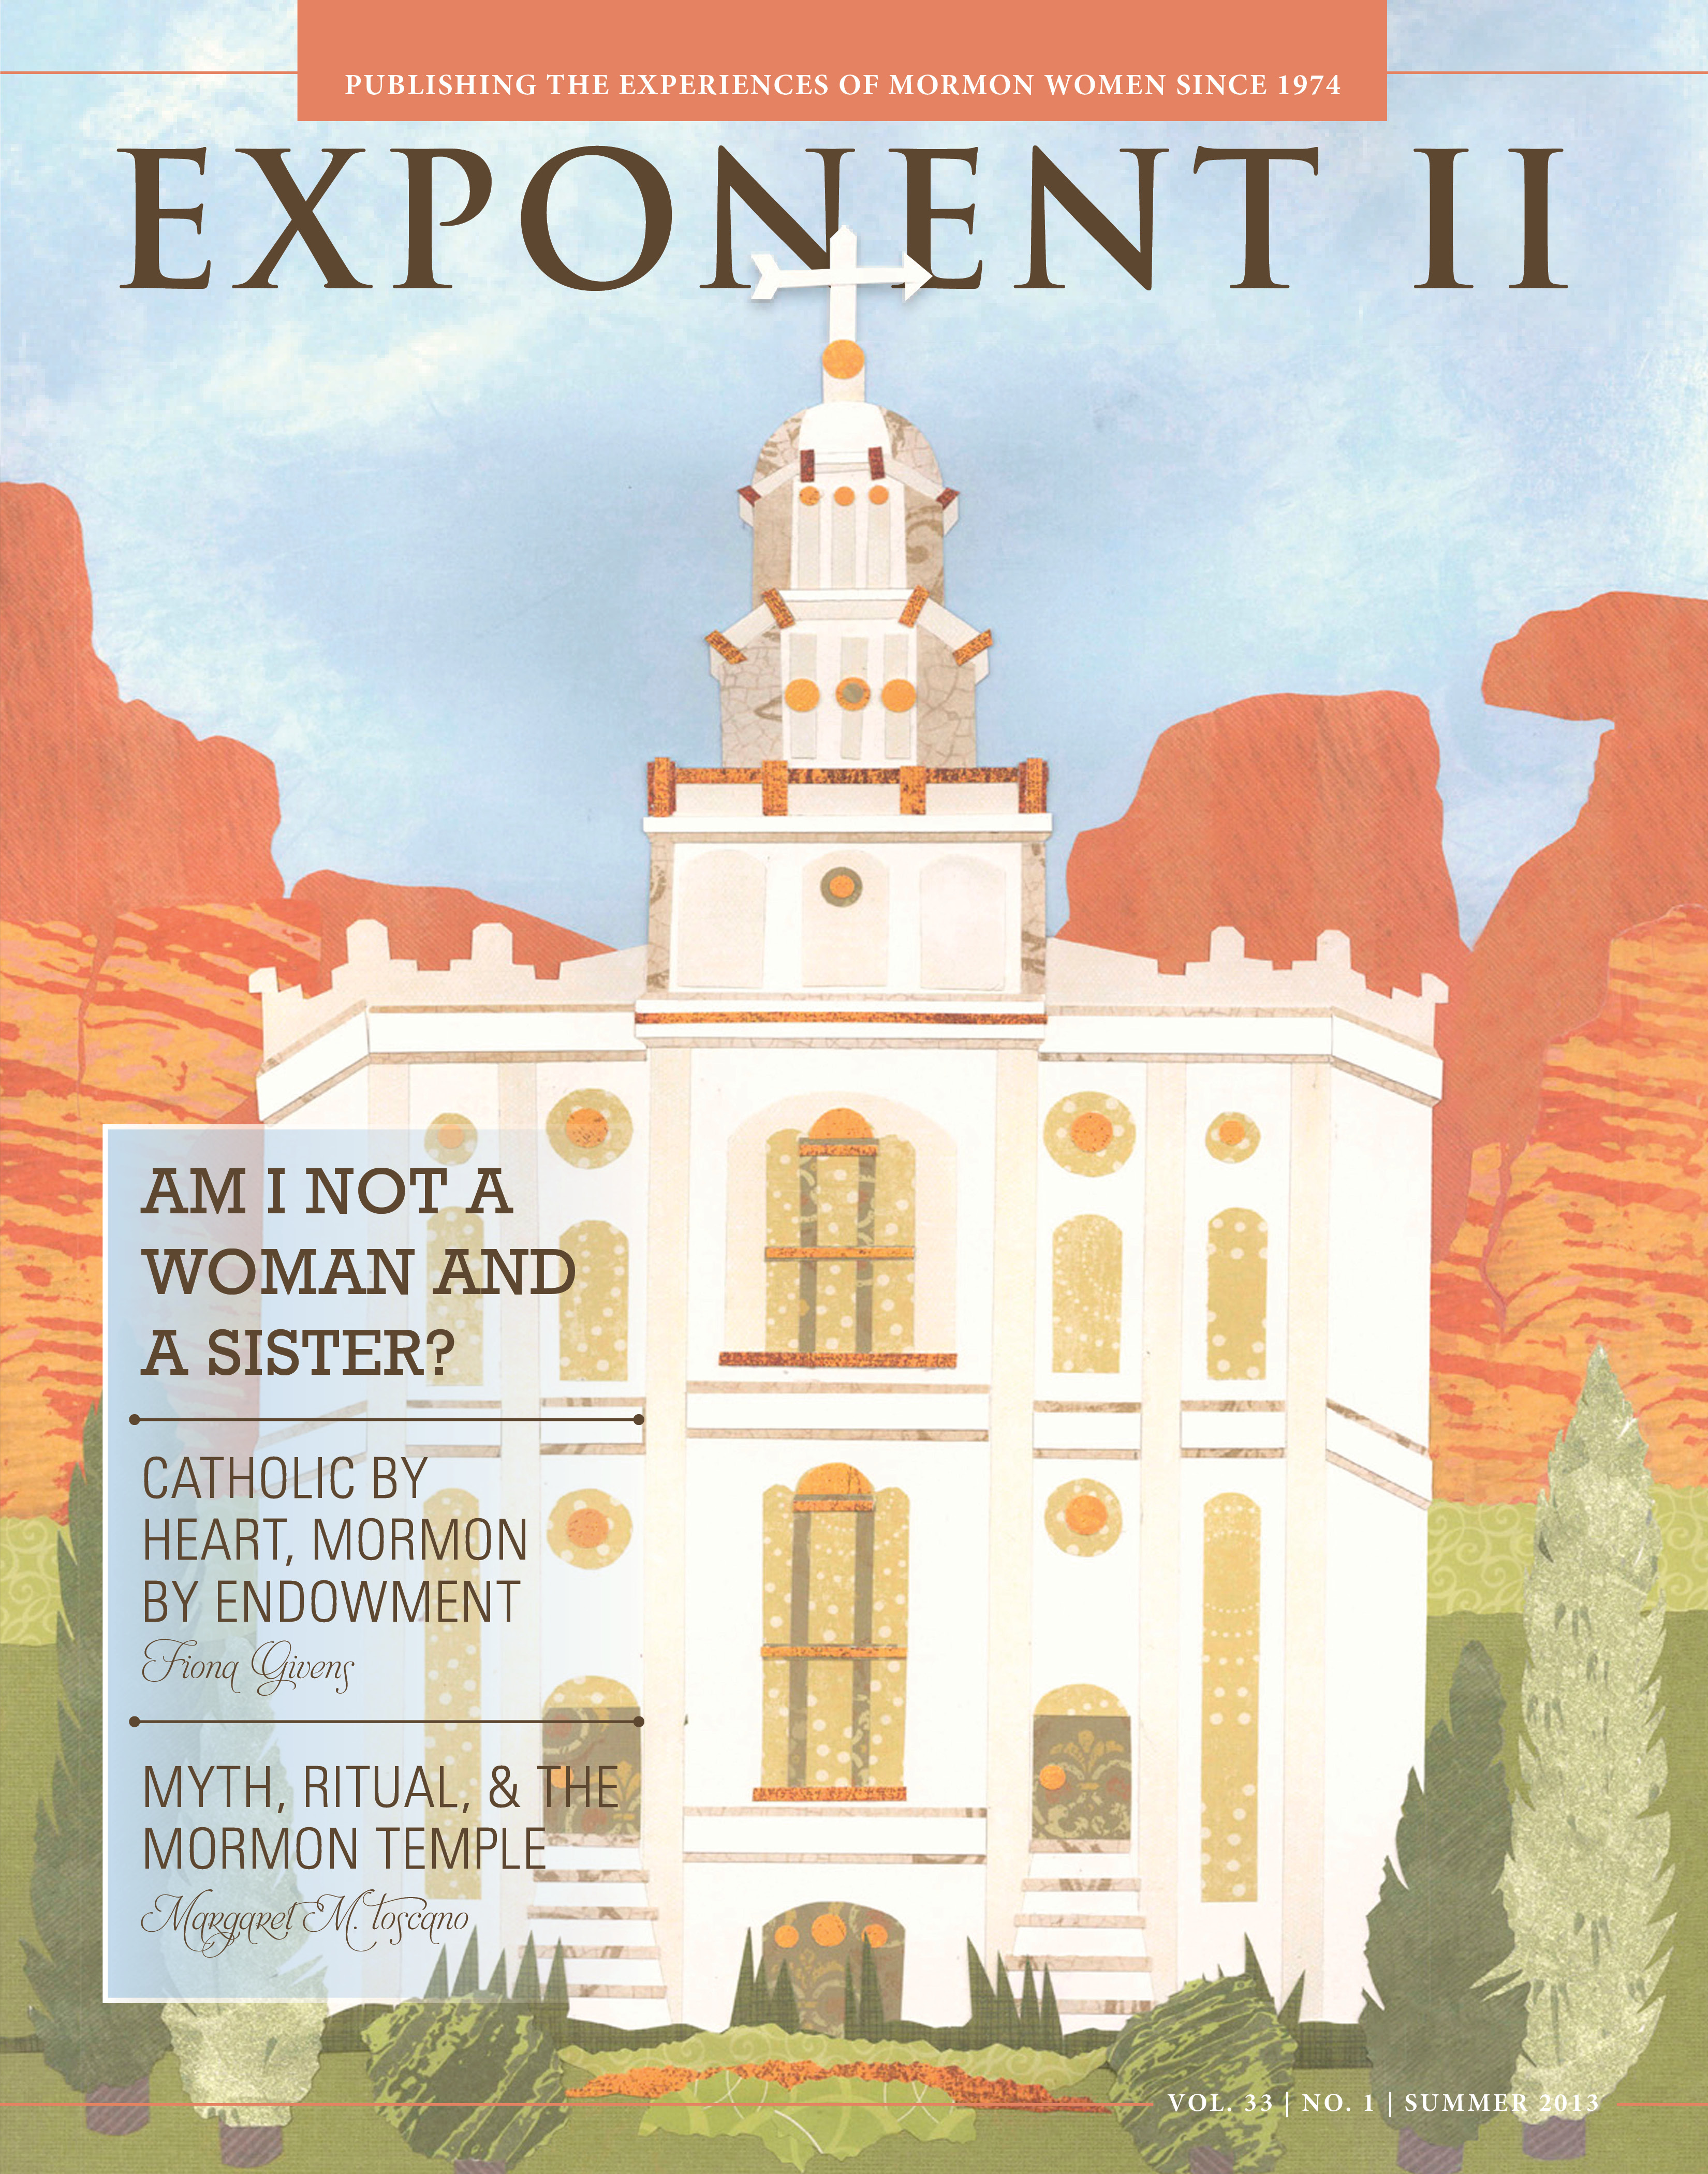 A Conversation with the Exponent II blog